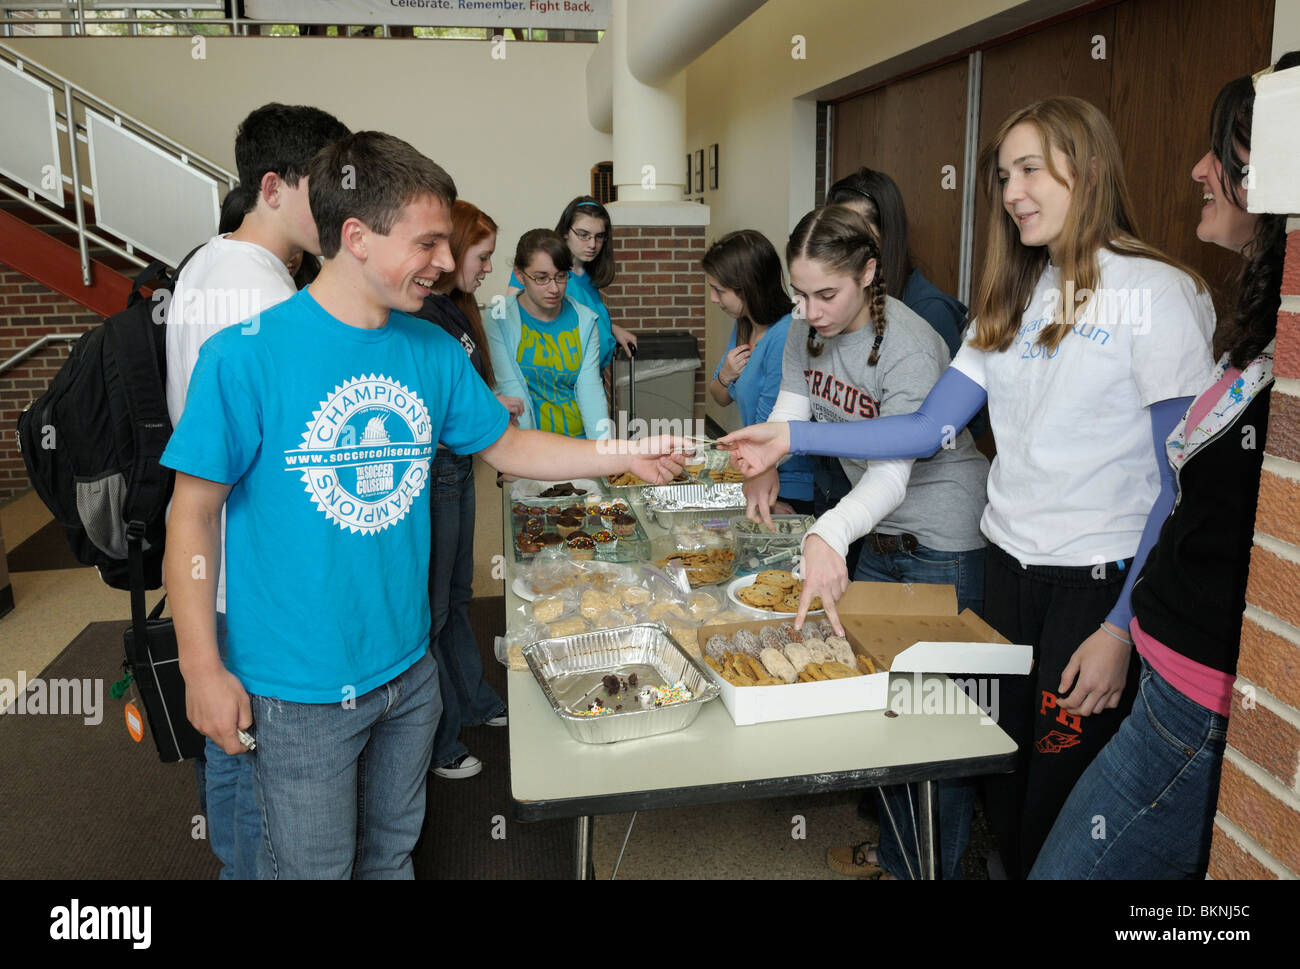 High school students gathering at an after school bake sale fundraiser. - Stock Image